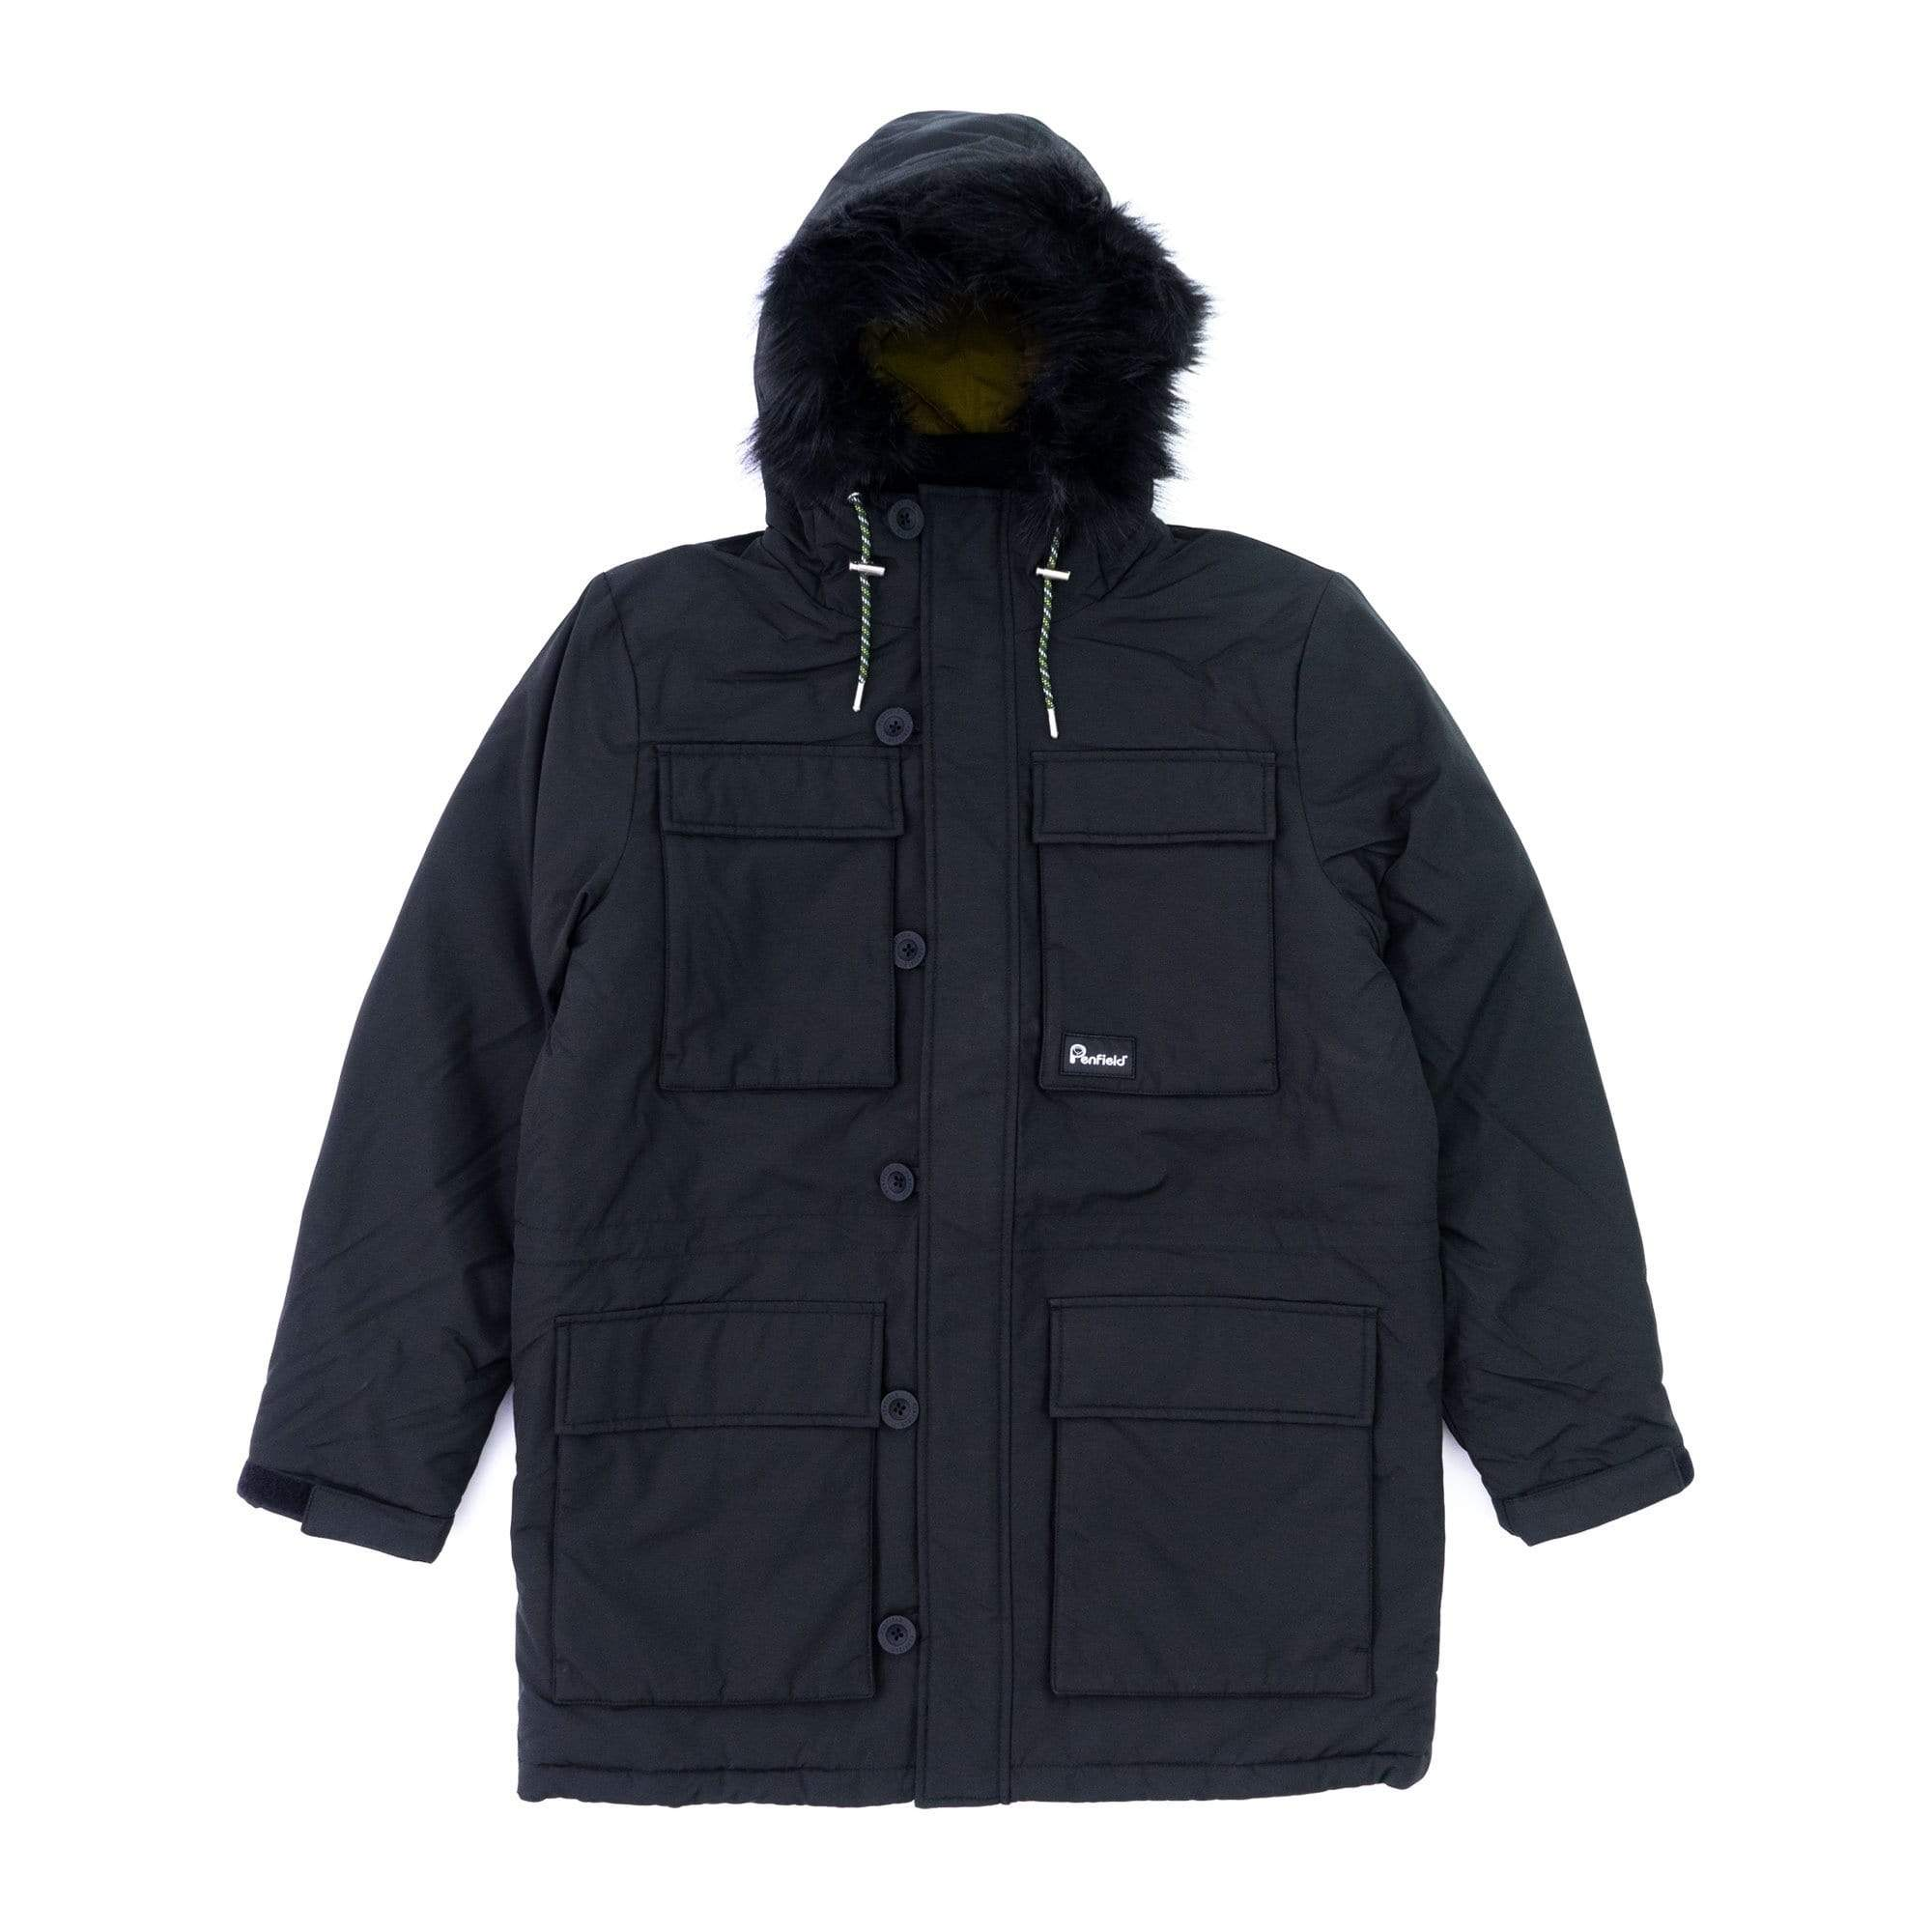 Penfield Jacken MAPLE Parker Jacket